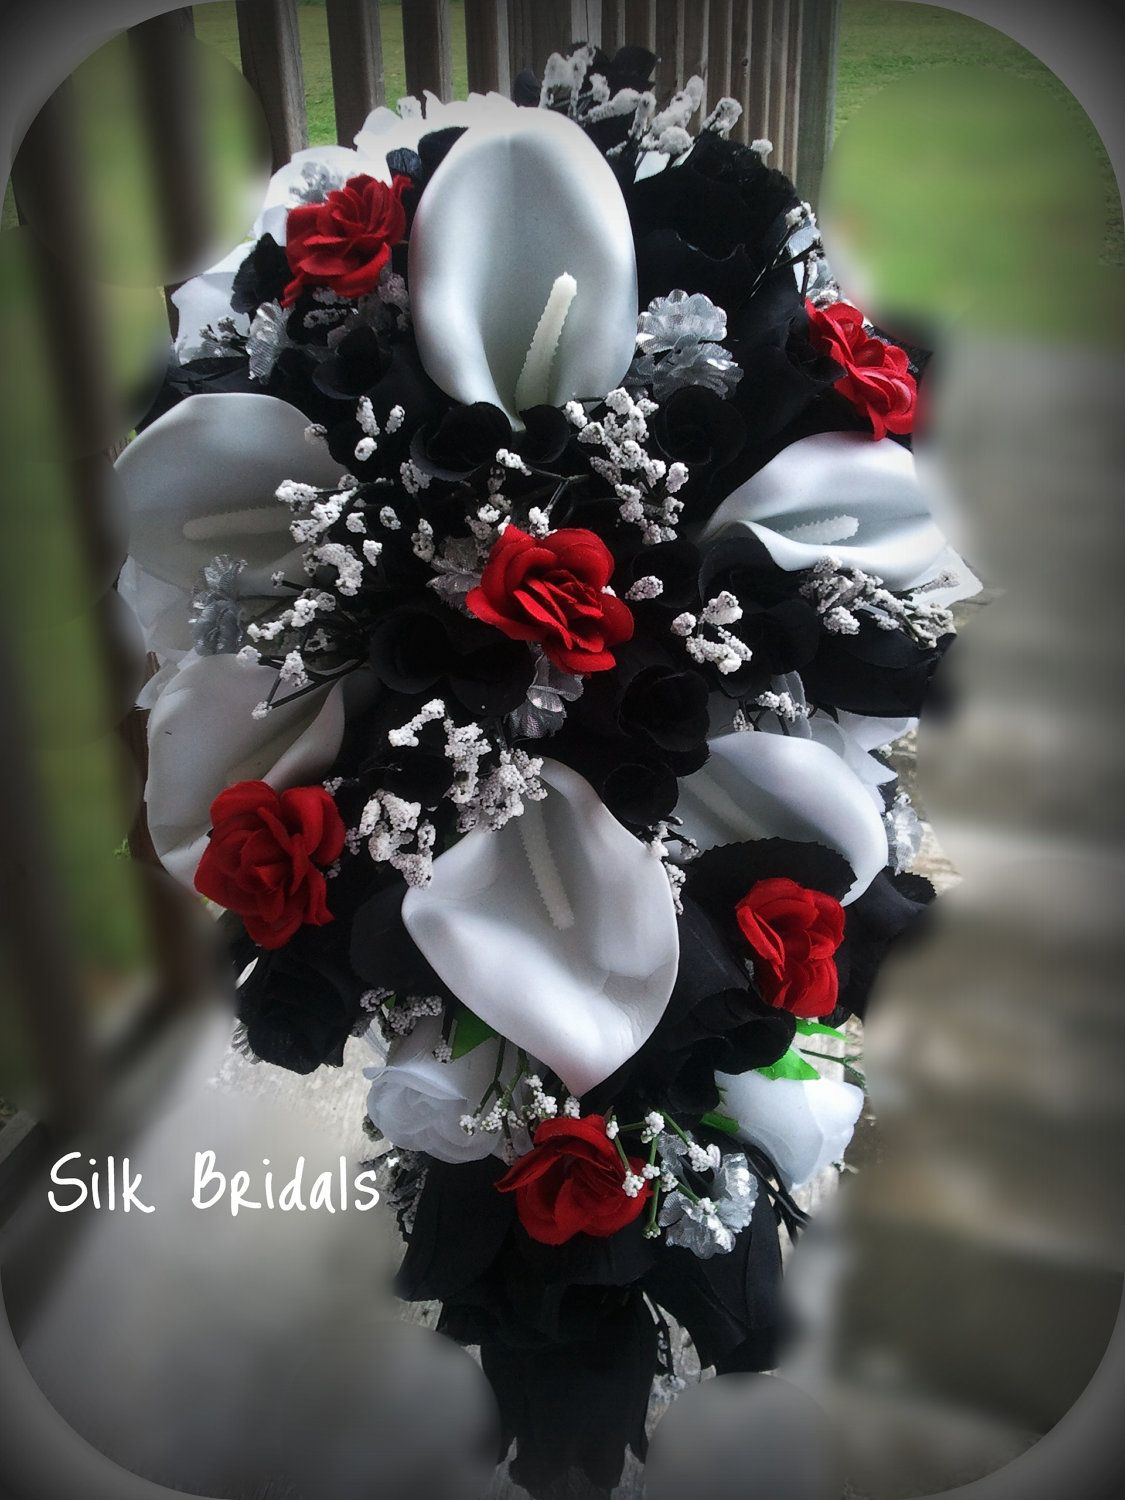 Bridal bouquet silk wedding flowers black red white silver calla bridal bouquet silk wedding flowers black red white silver calla roses 46pc set for jasey 27500 via etsy mightylinksfo